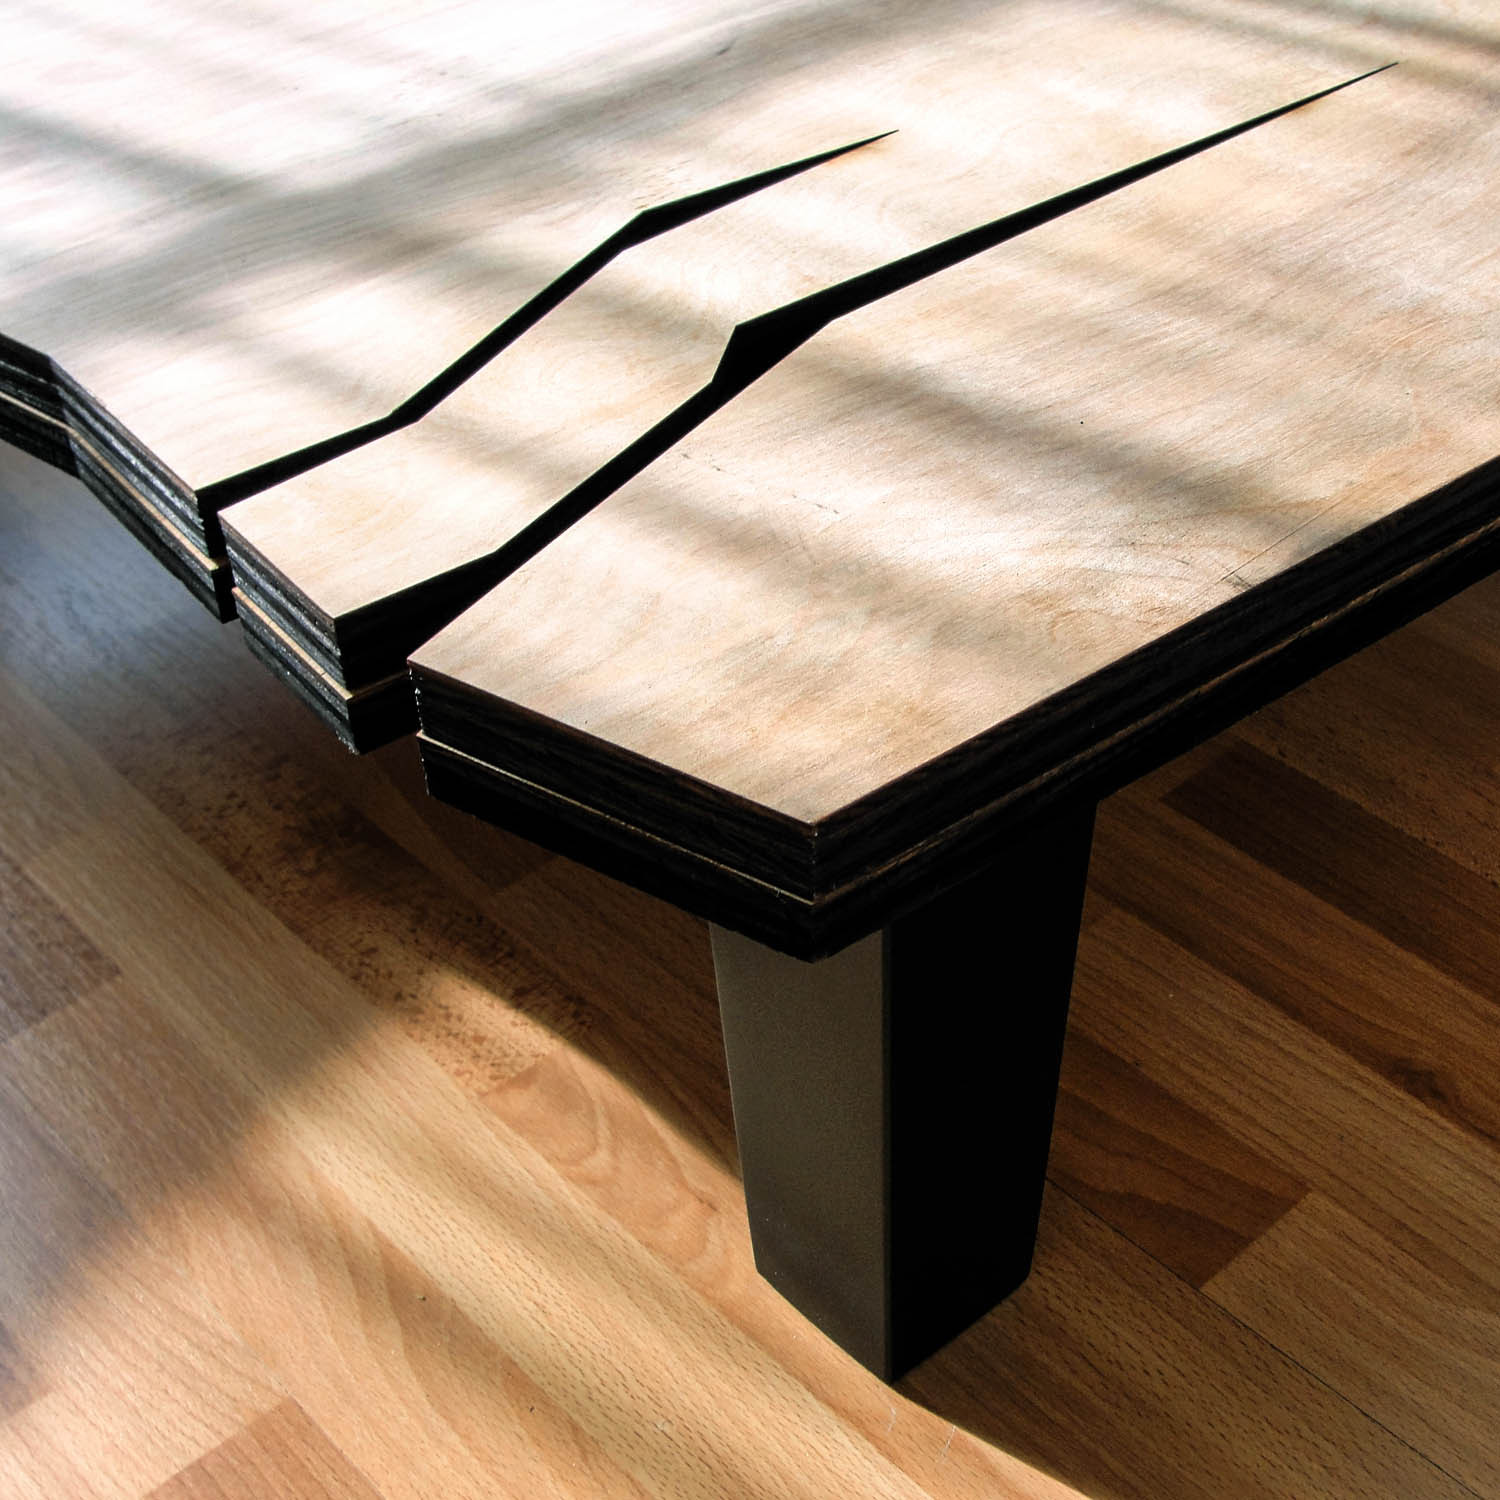 AD Natural Coffee Table by Farzan Nemat